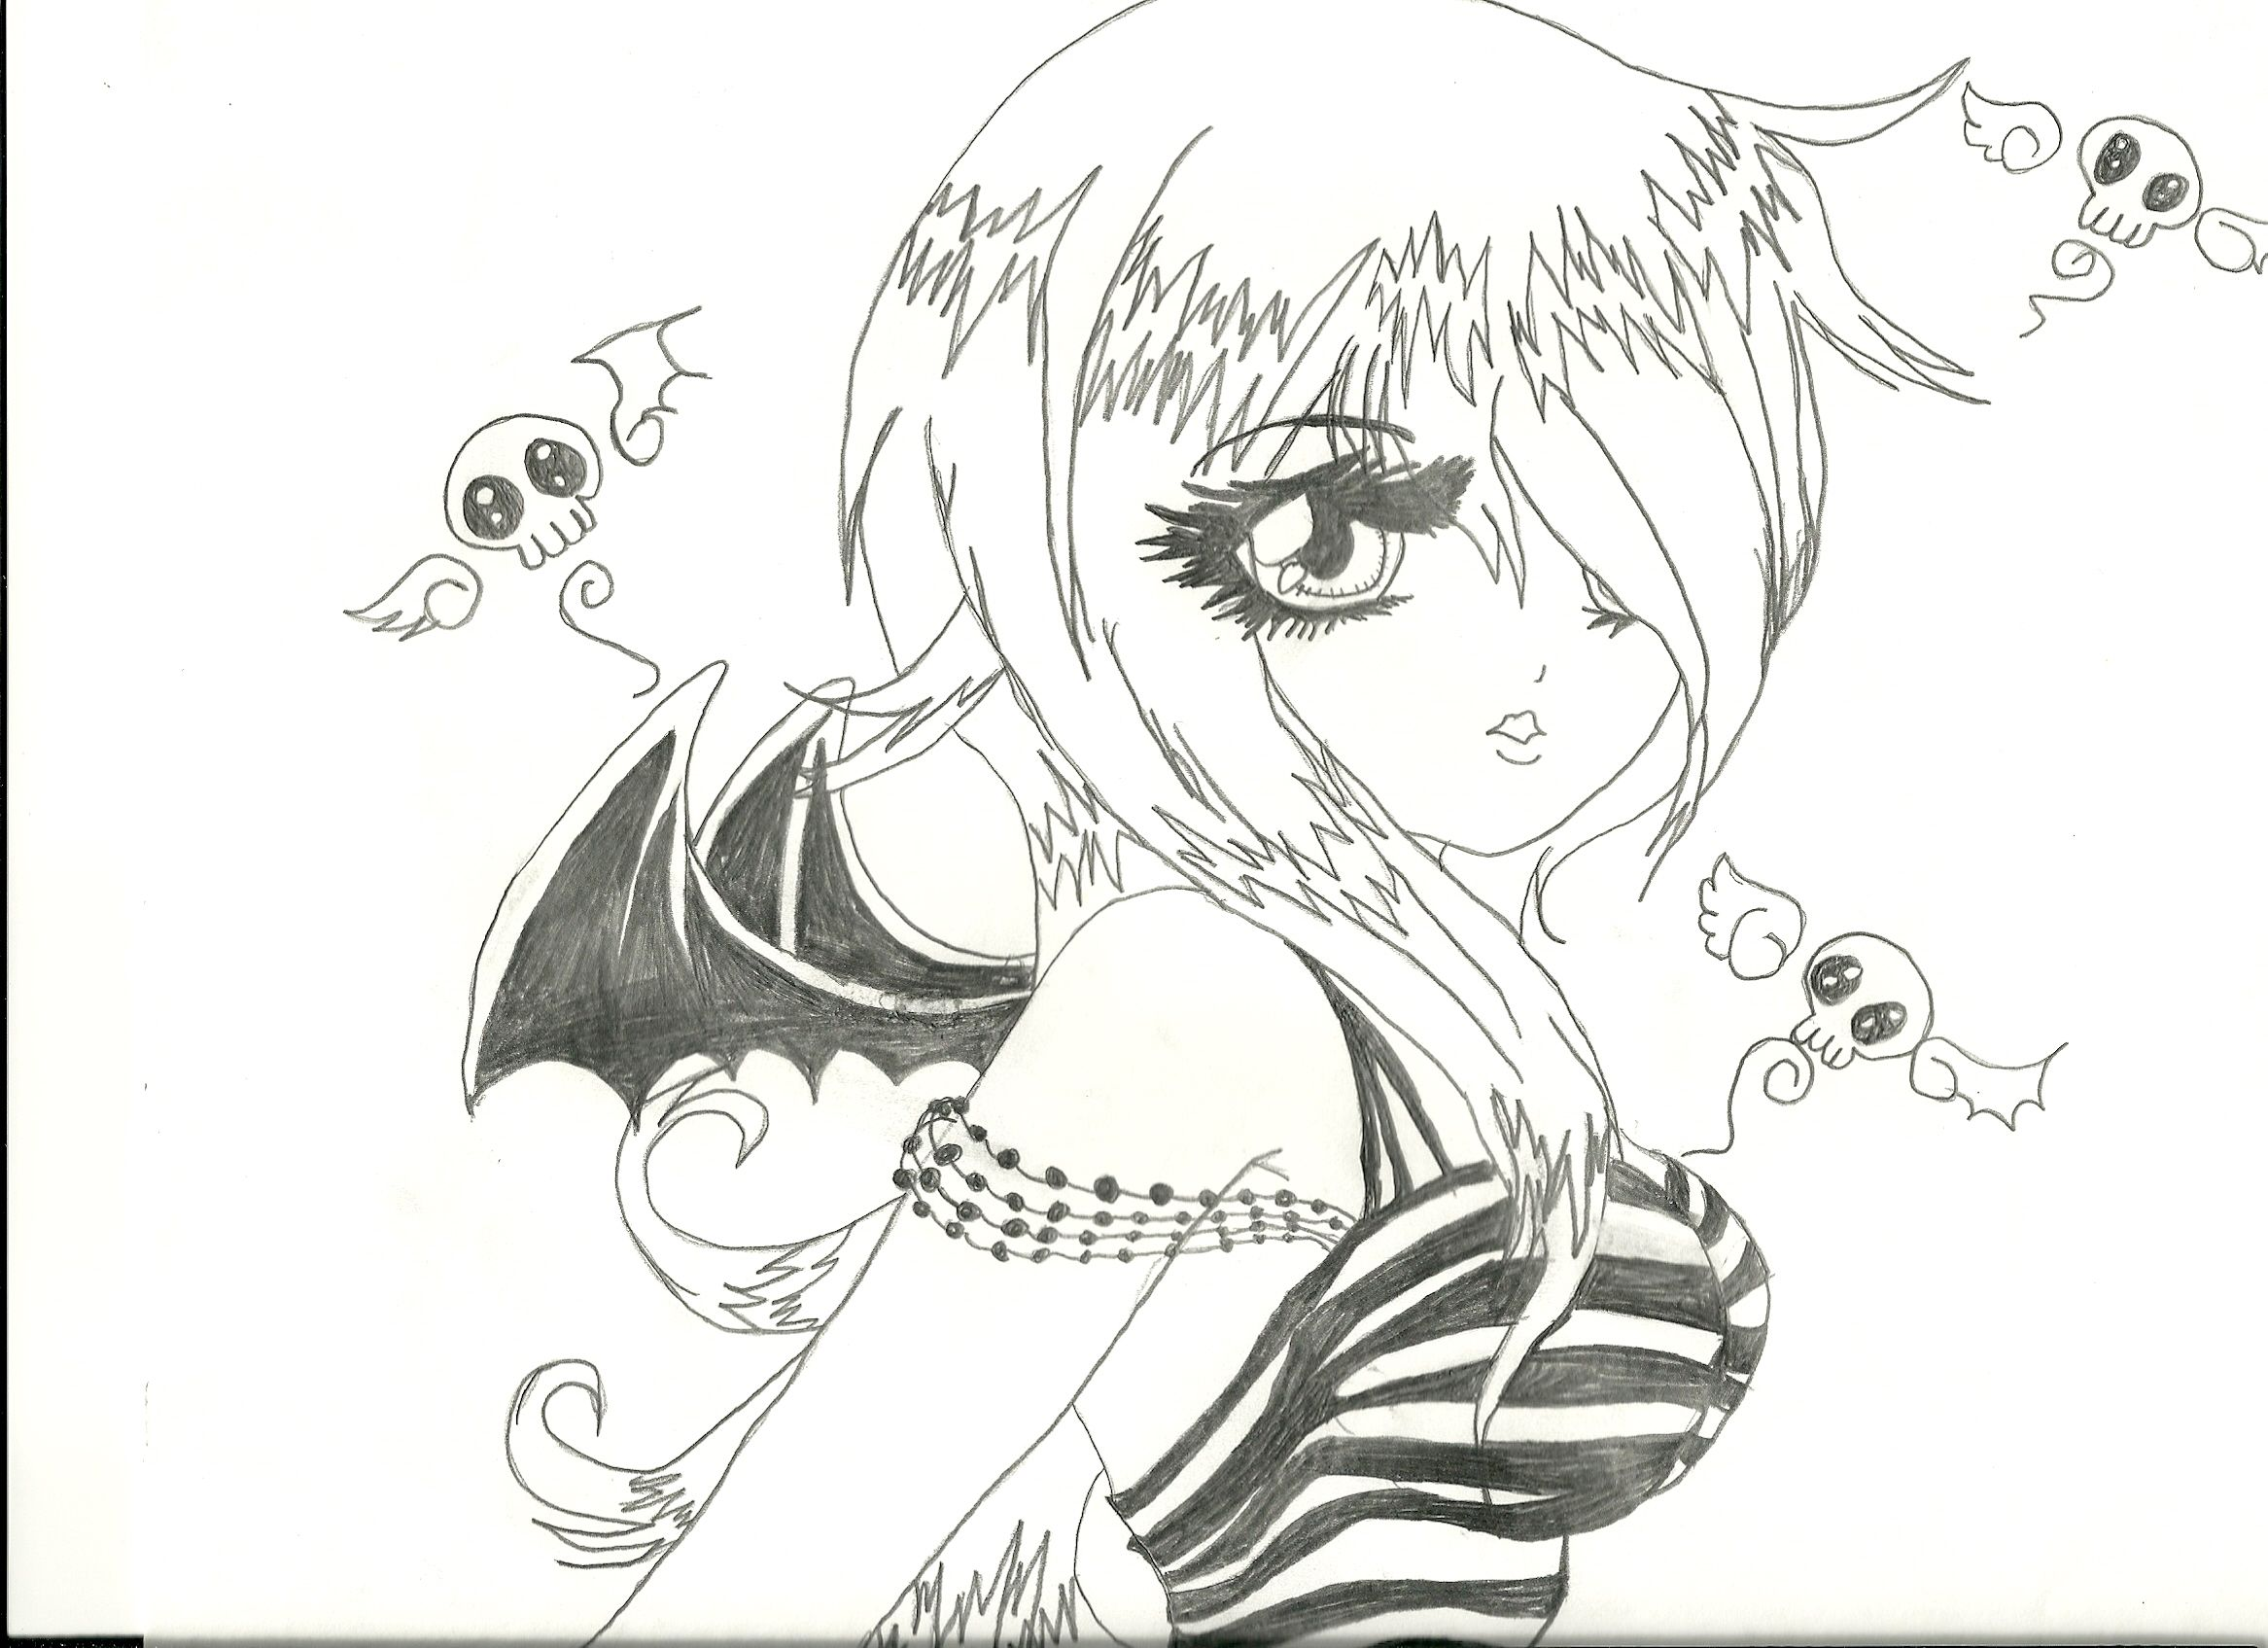 Anime Demon Girl 1 000000030380 1 Jpg 2333 1695 Anime Chibi Coloring Pages Anime Drawing Styles